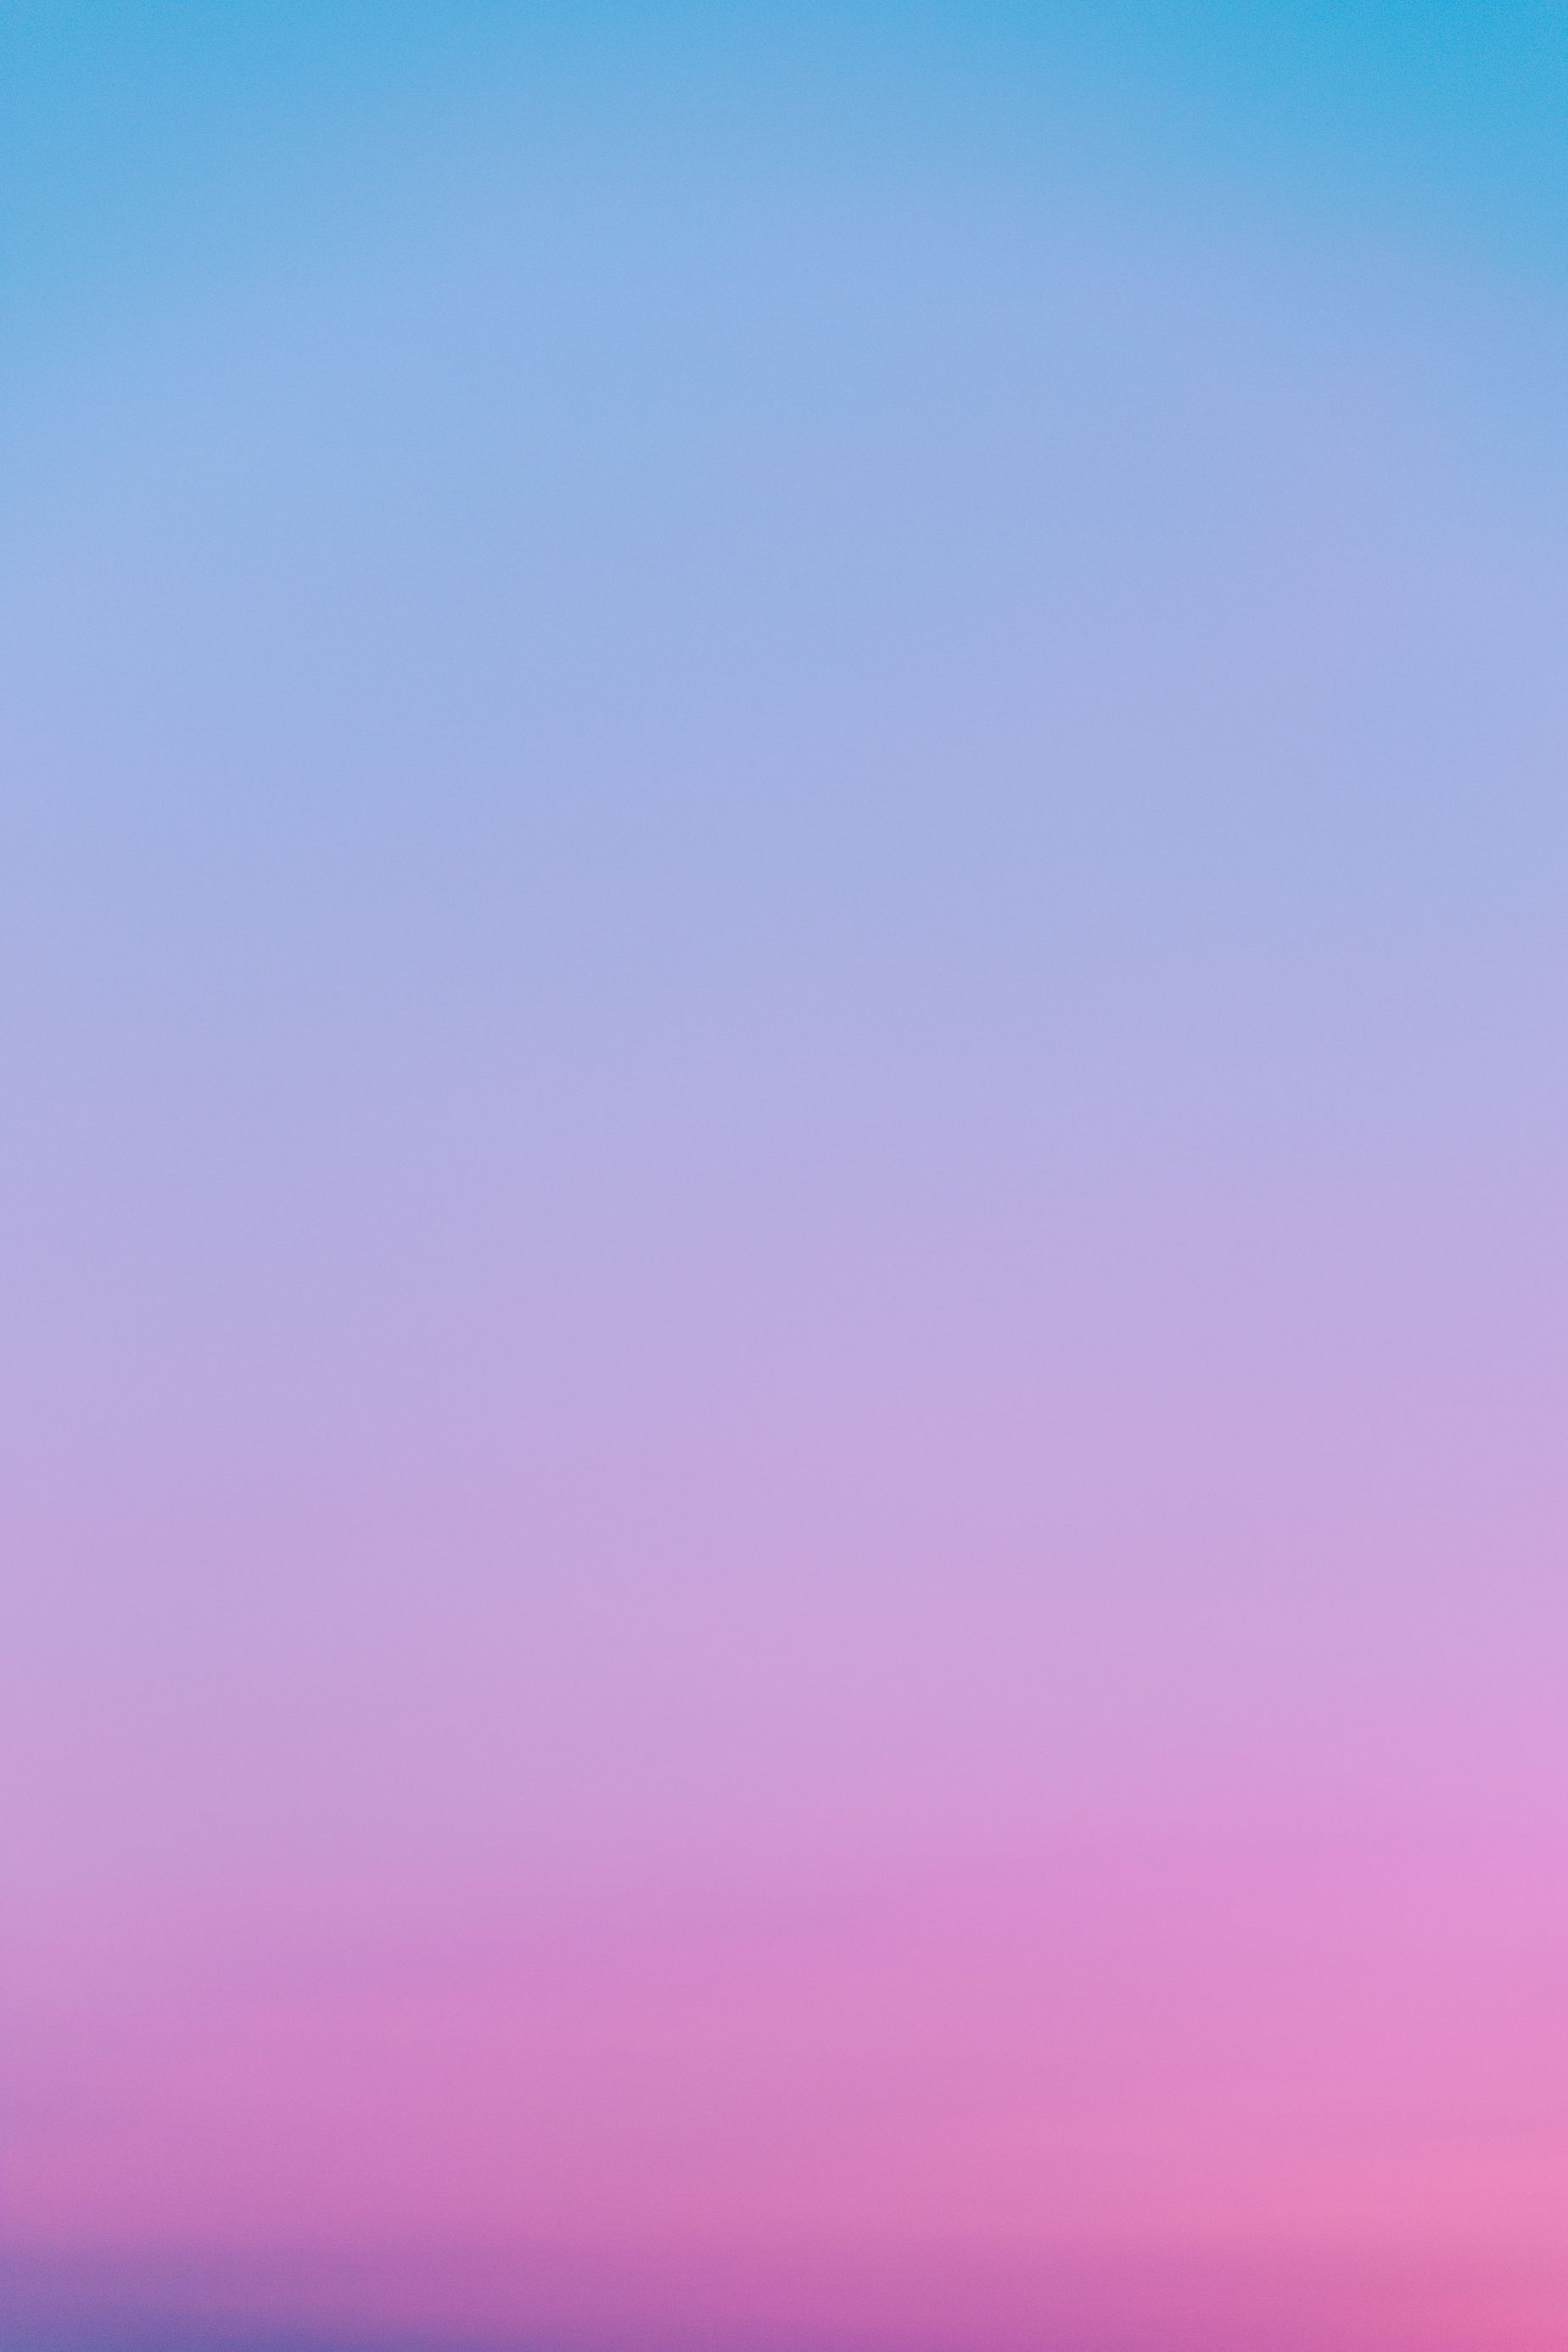 Horizon Is A Series Of Photographs By Tom Radenz Of The Serene Clear Sky And Horizon Above Th Purple Ombre Wallpaper Pink Ombre Wallpaper Blue Wallpaper Iphone